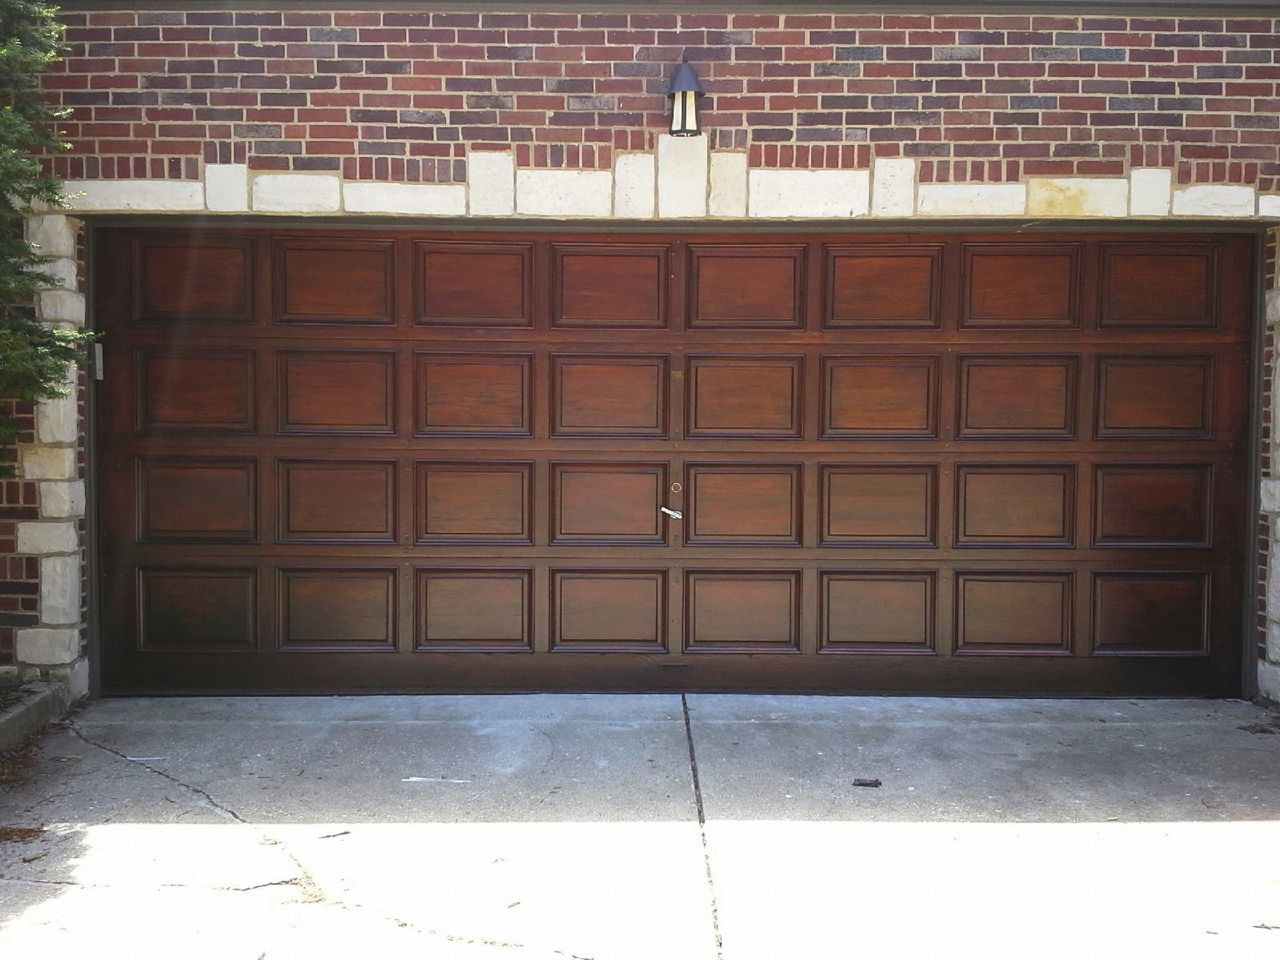 Etonnant Doug Fir Garage Door U2013 Before Refinishing. Doug ...